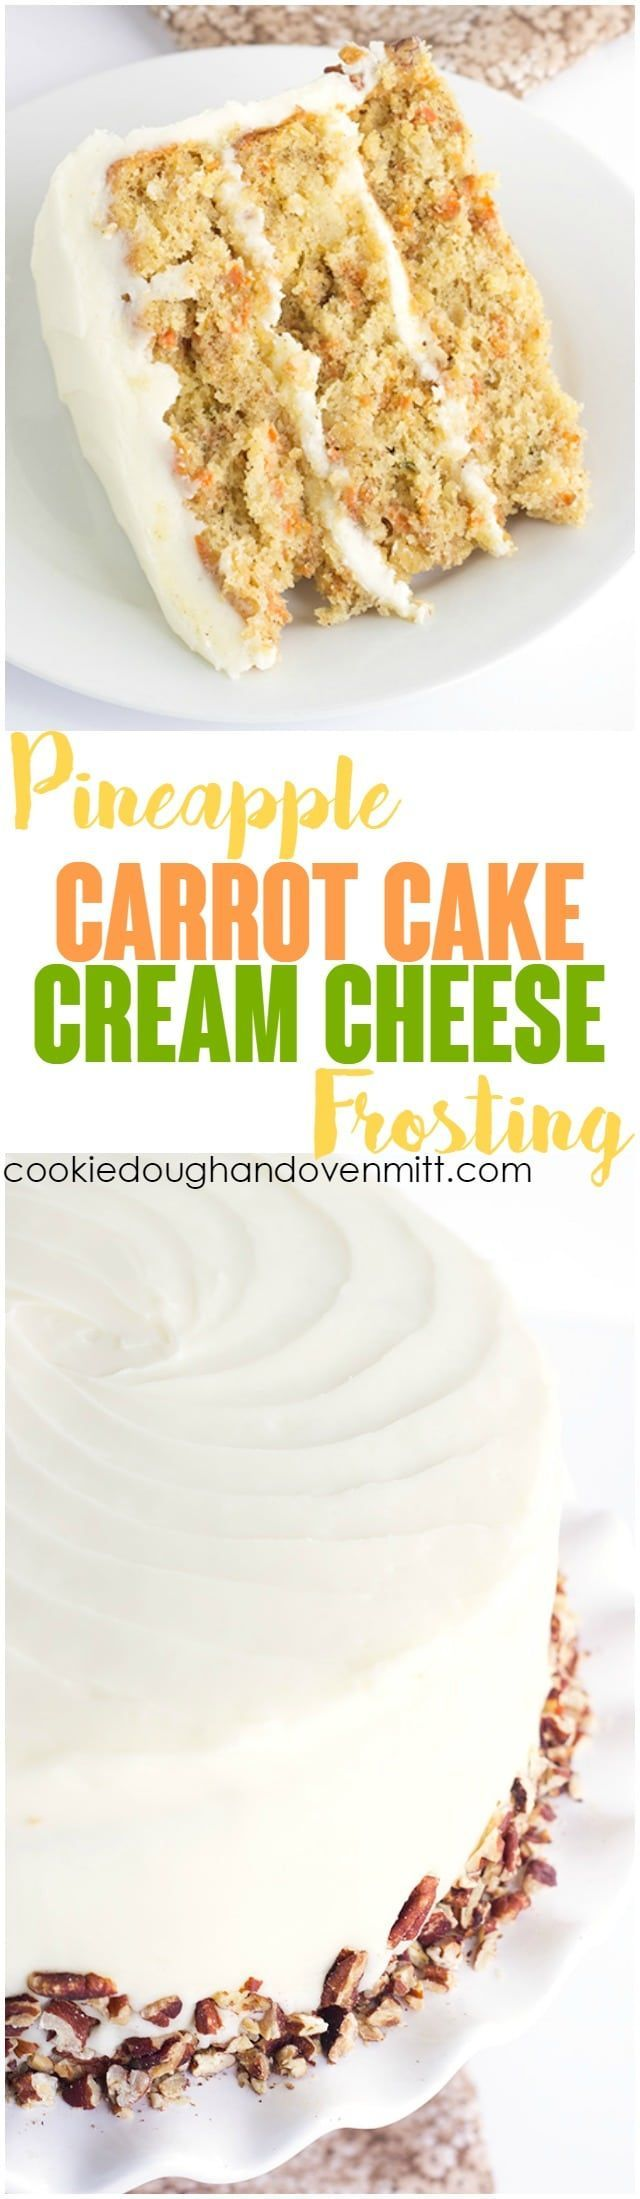 Pineapple Carrot Cake with Cream Cheese Frosting - the perfect Easter cake! It's full of crushed pineapple, shredded carrots, and cinnamon. It's slathered with a cream cheese frosting infused with pineapple juice and garnished with toasted pecans. via @mm